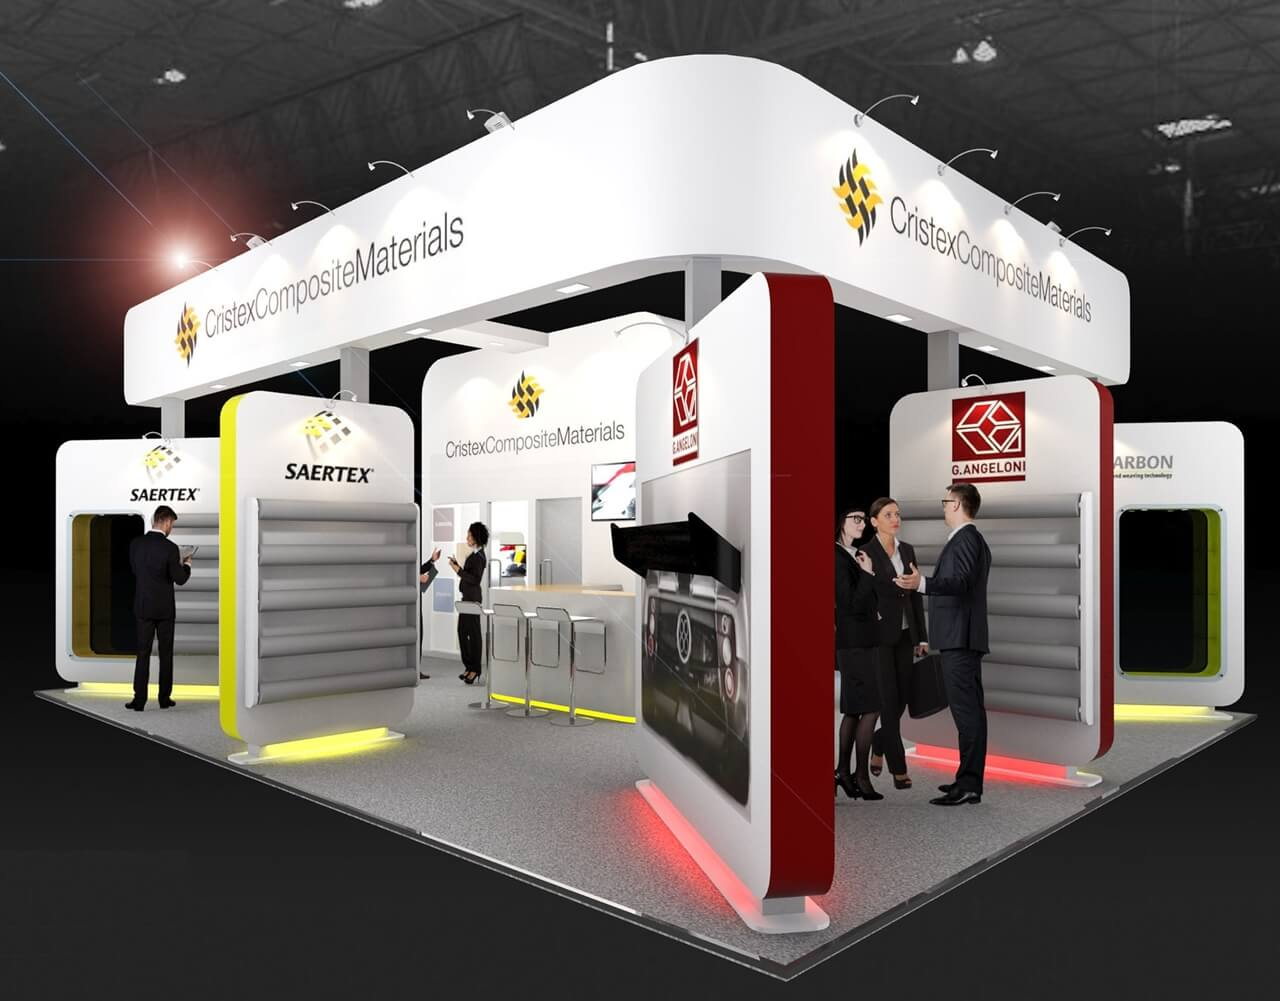 Exhibition Stand Design Images : Exhibition stand design designers of stands